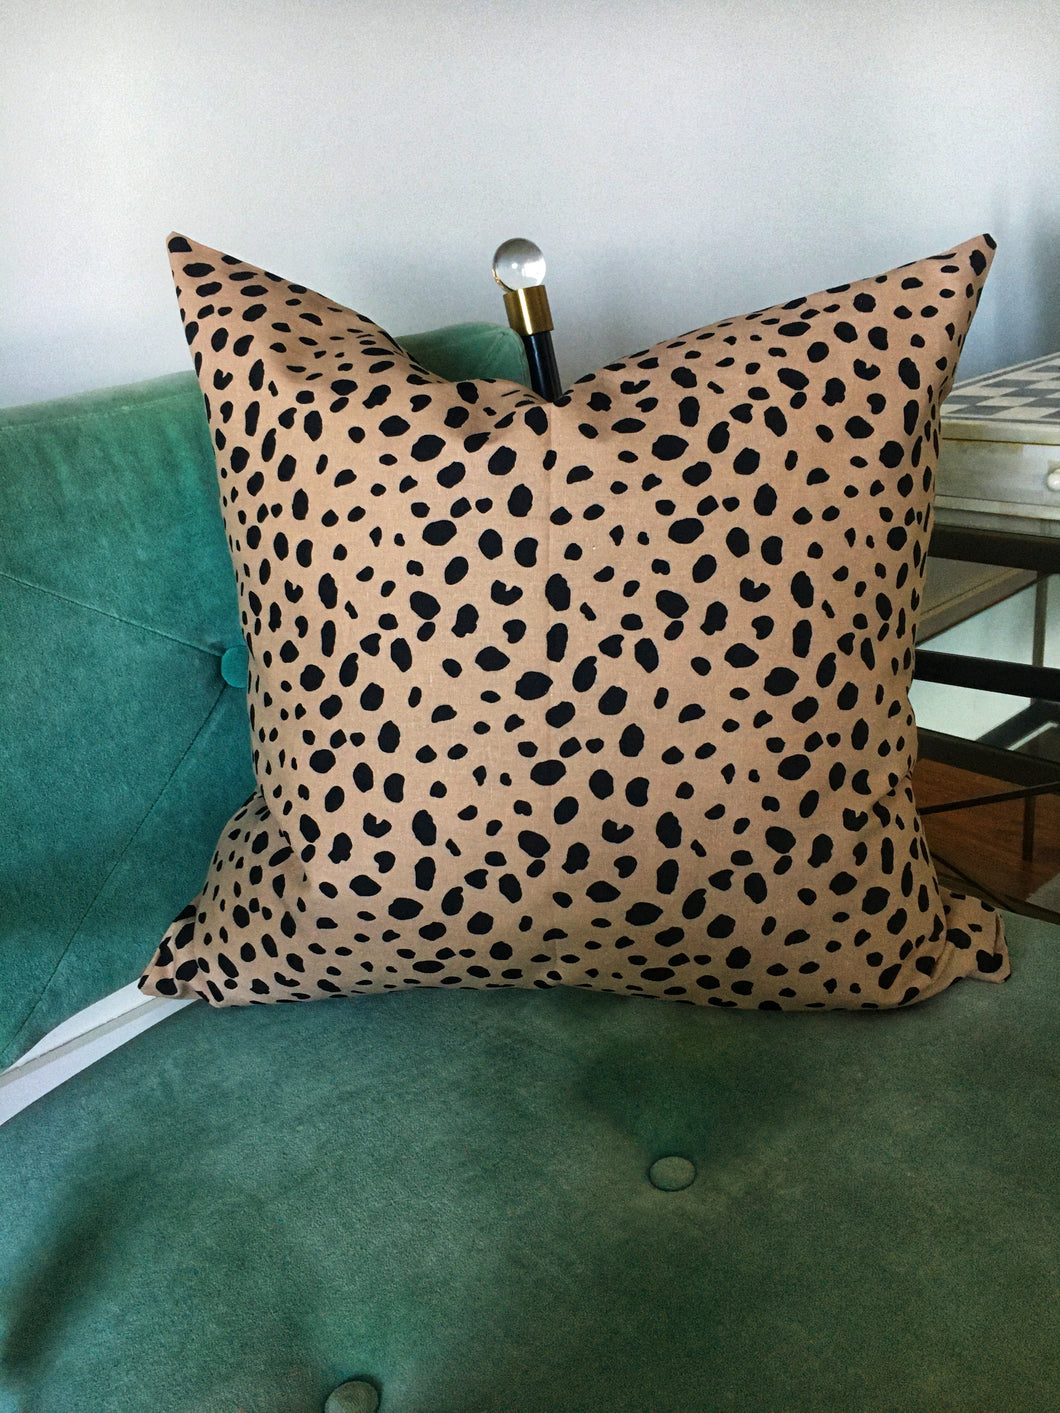 Cushion Covers - Leopard Print